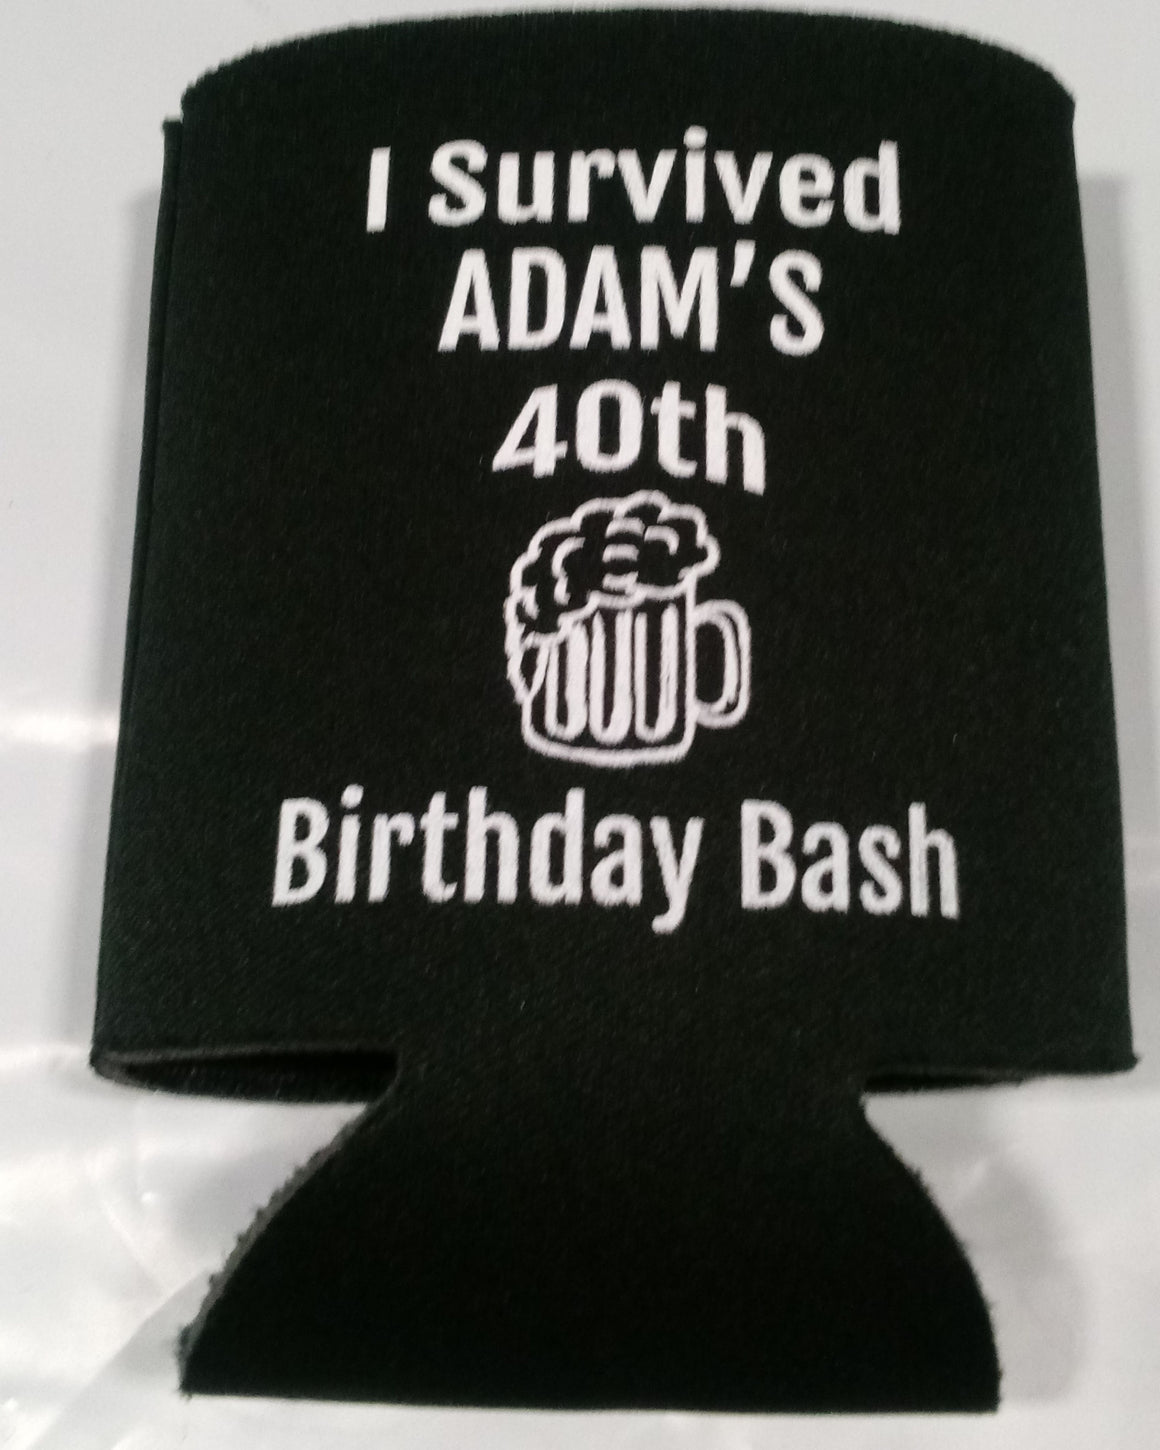 i survived 40th Birthday bash koozies favors can coolers